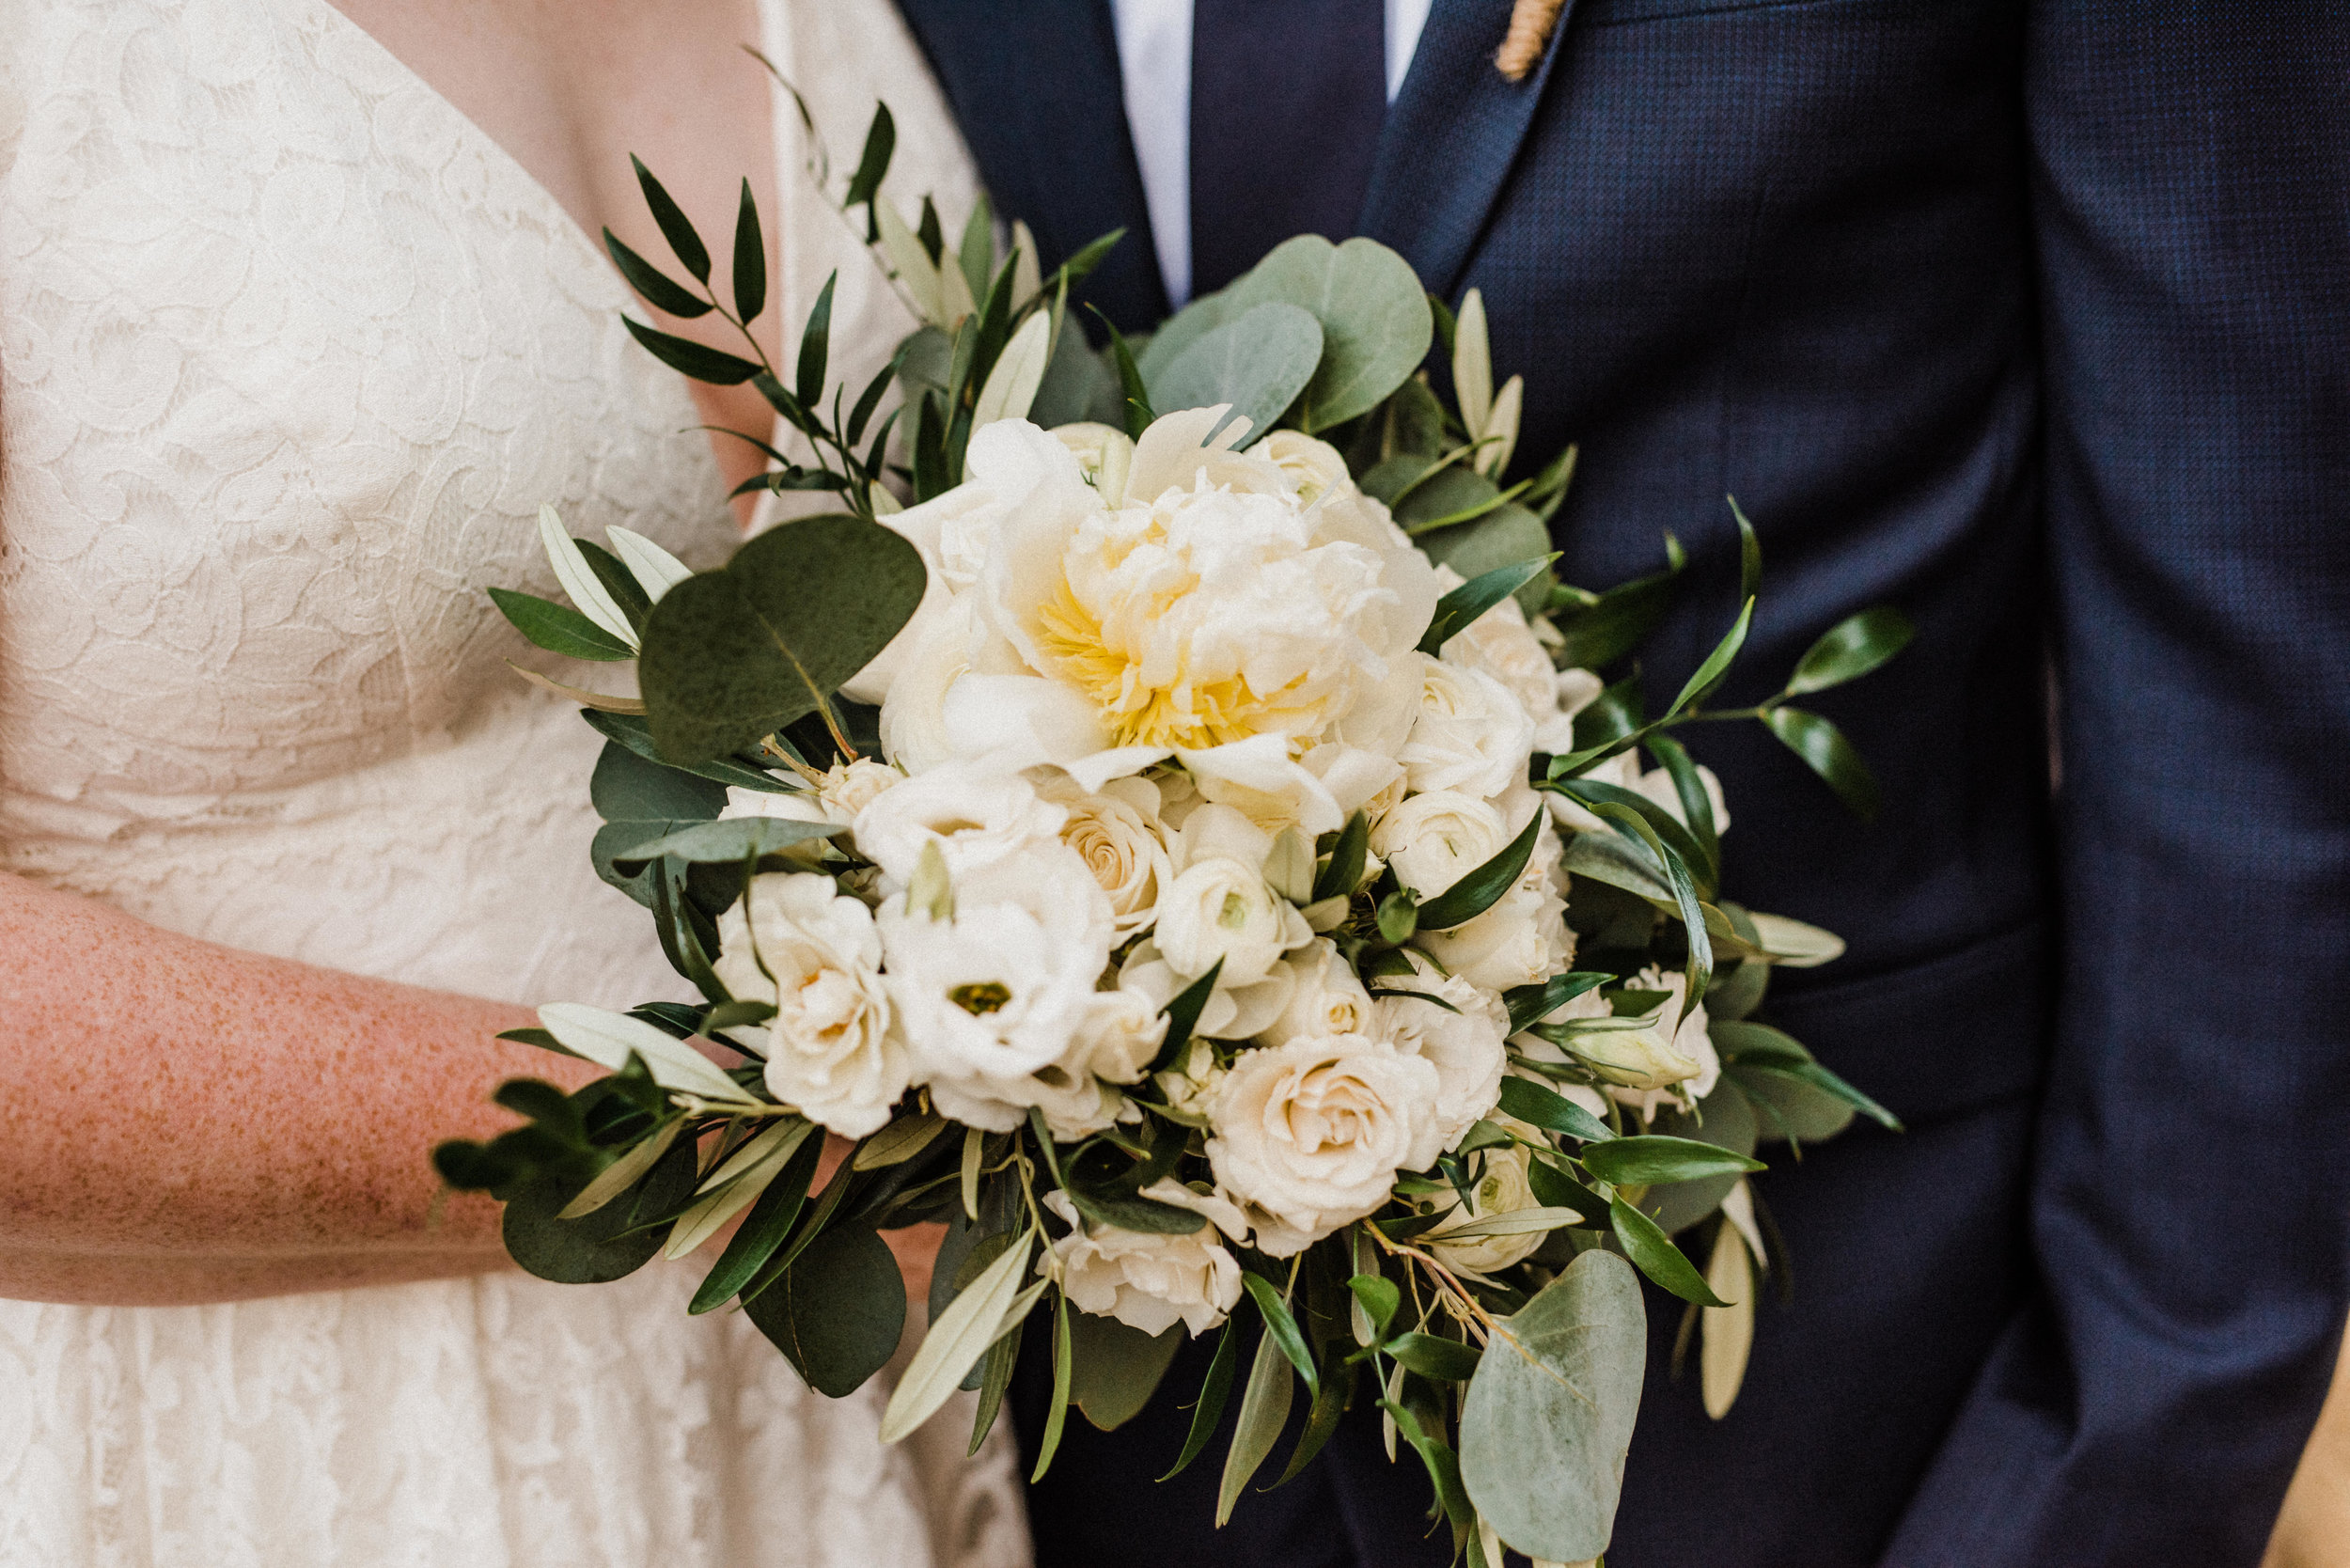 Romantic and classic green and white floral bouquet at Glacier Point elopement